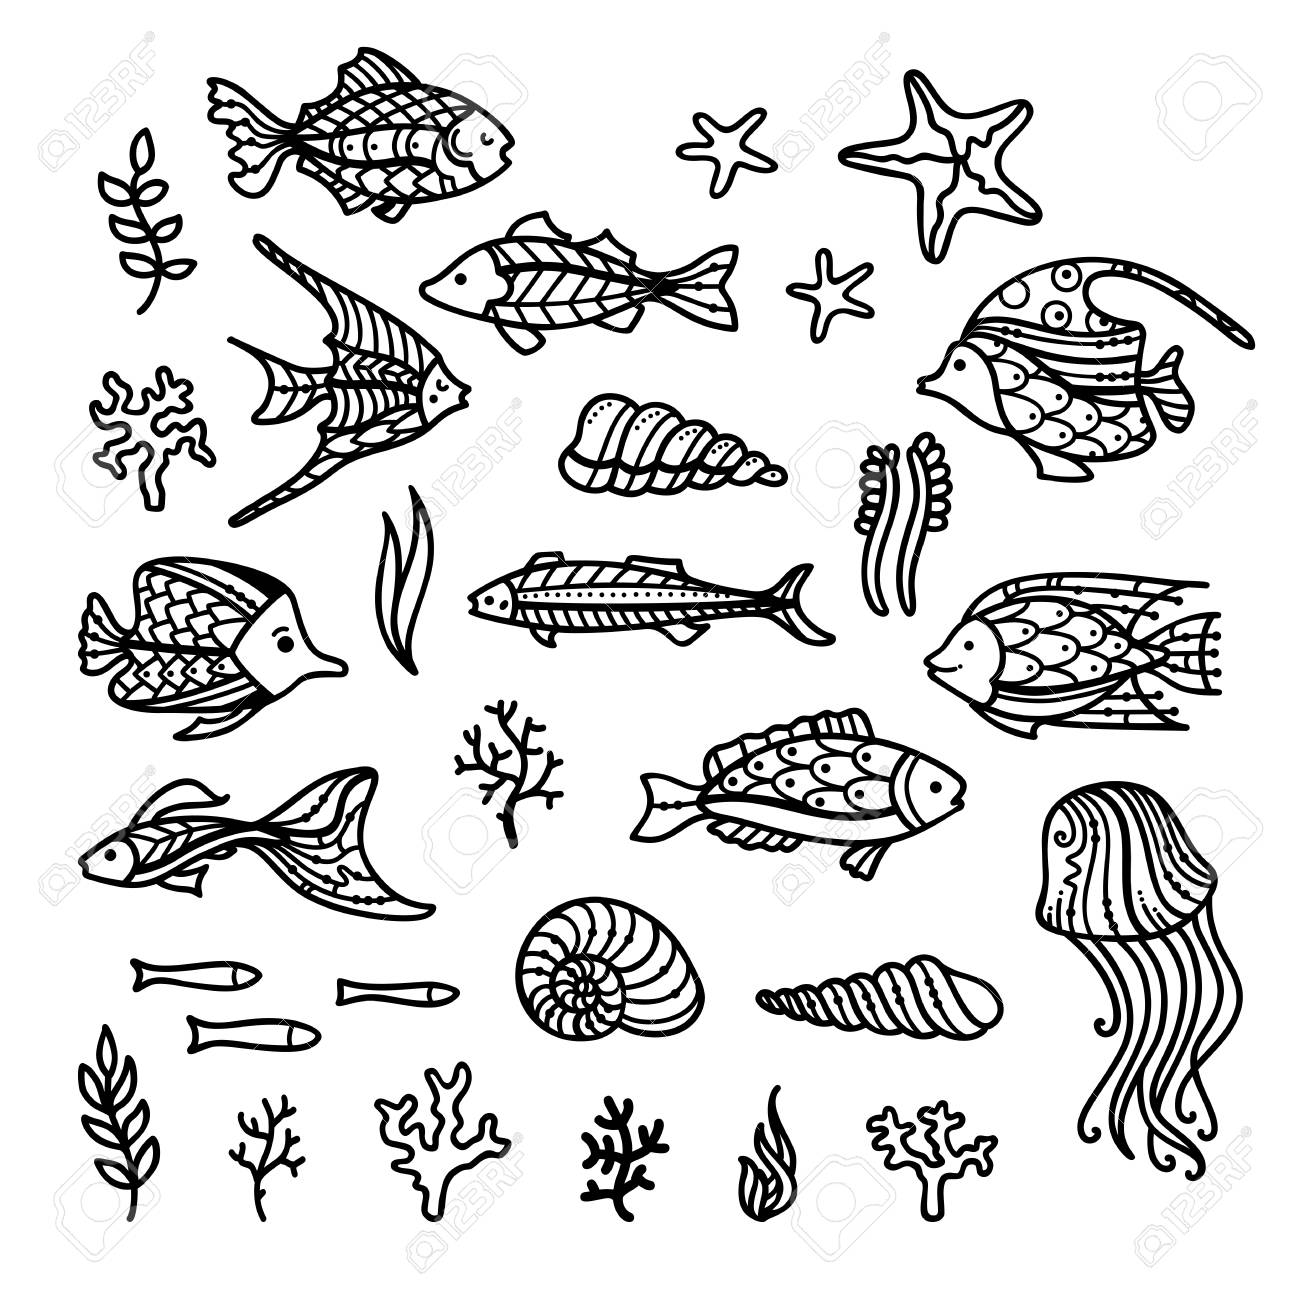 Vector Doodles Underwater Icons Set Set Of Fish Sea Plants Royalty Free Cliparts Vectors And Stock Illustration Image 95533183